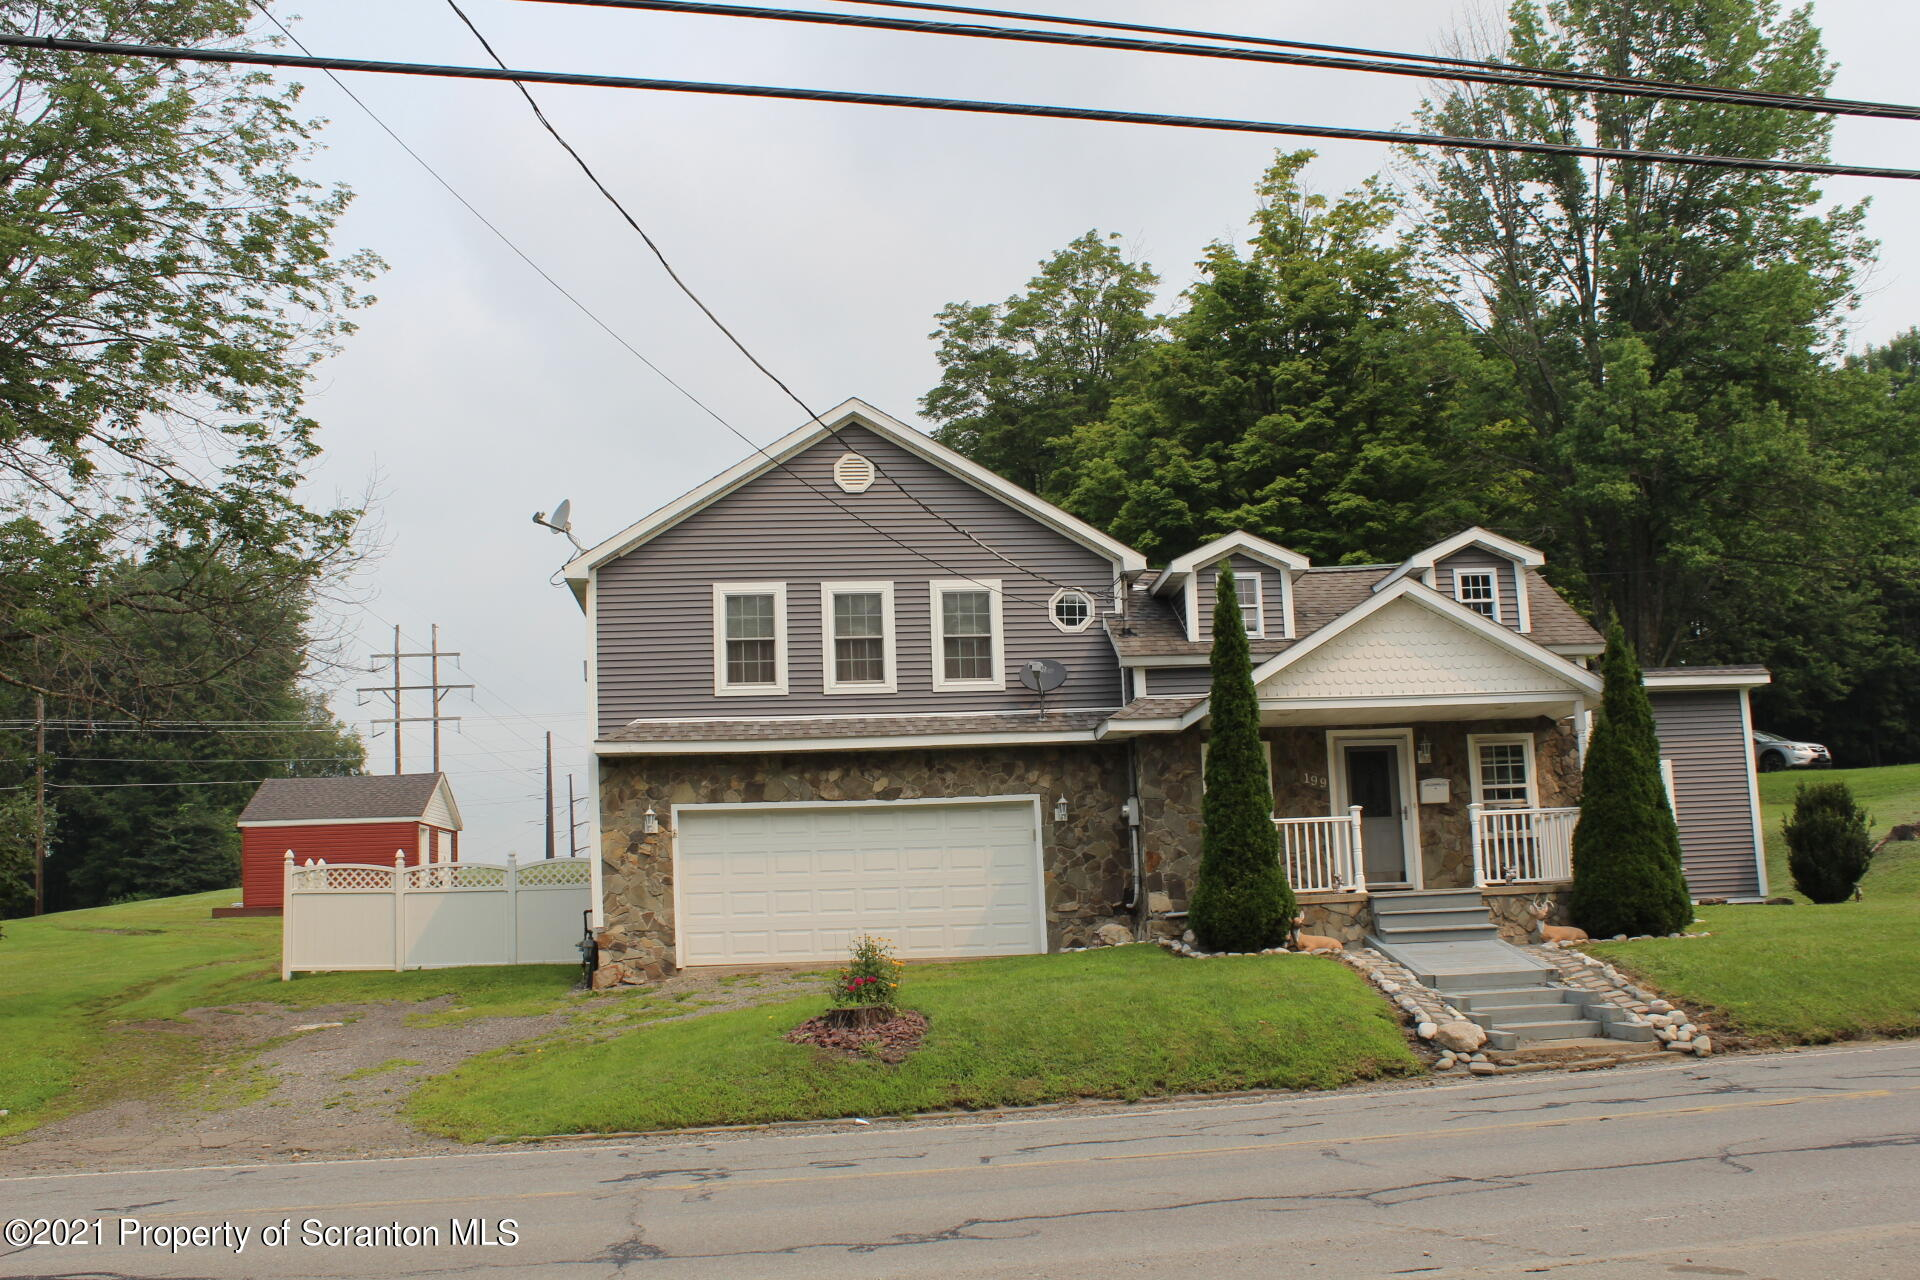 199 Canaan St, Carbondale, Pennsylvania 18407, 3 Bedrooms Bedrooms, 8 Rooms Rooms,3 BathroomsBathrooms,Single Family,For Sale,Canaan,21-3174